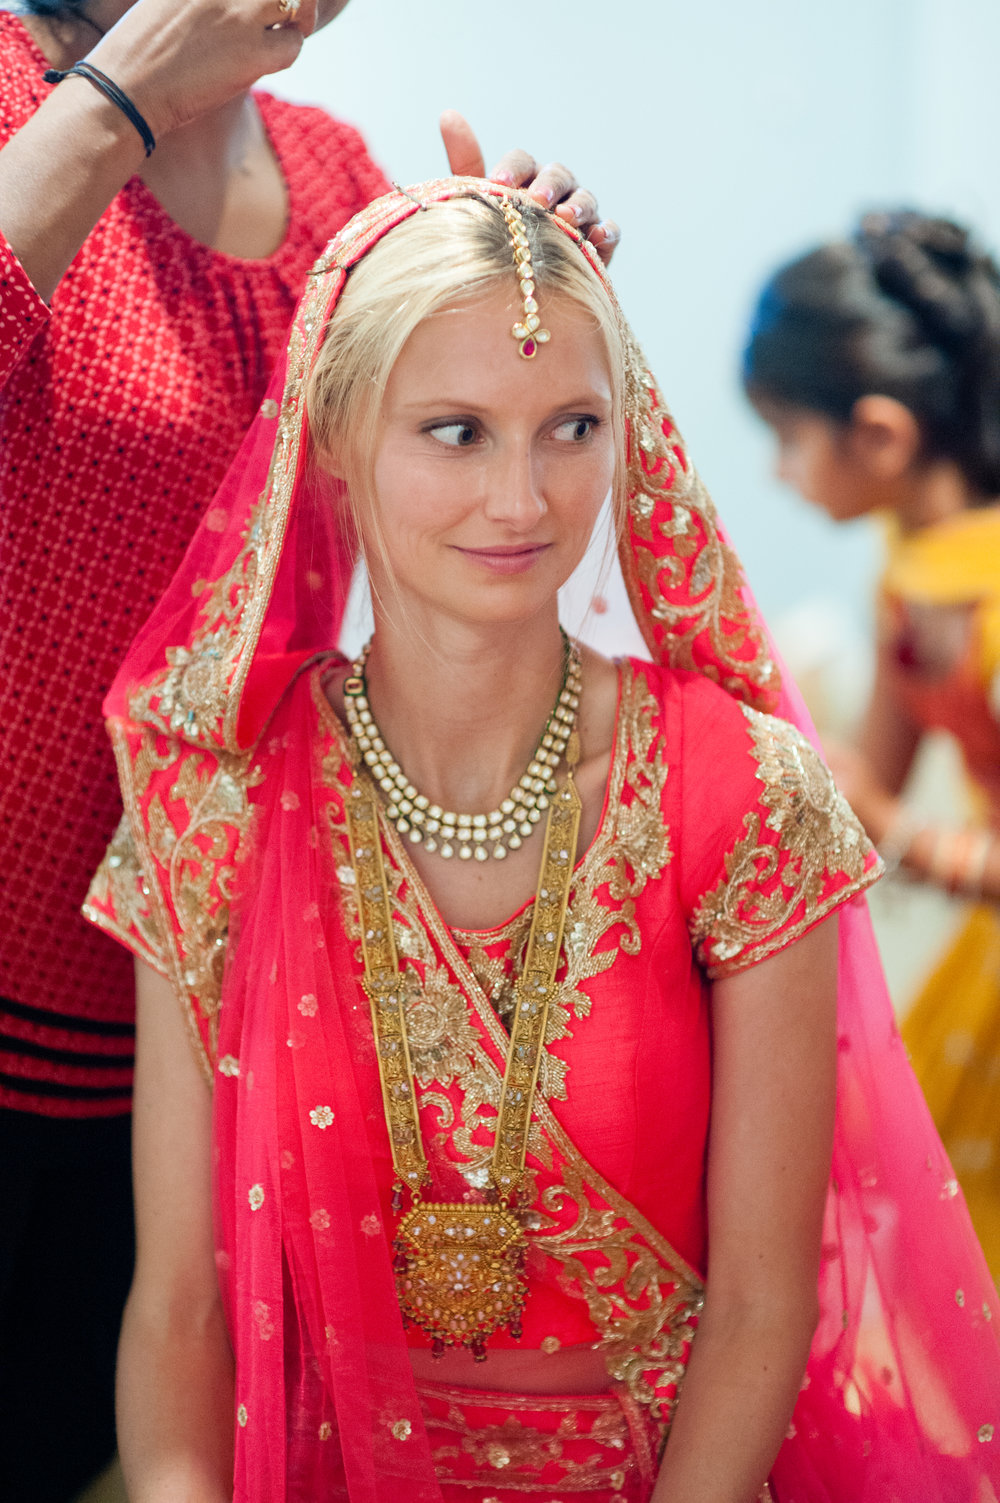 erica_shantanu_wedding-30.jpg